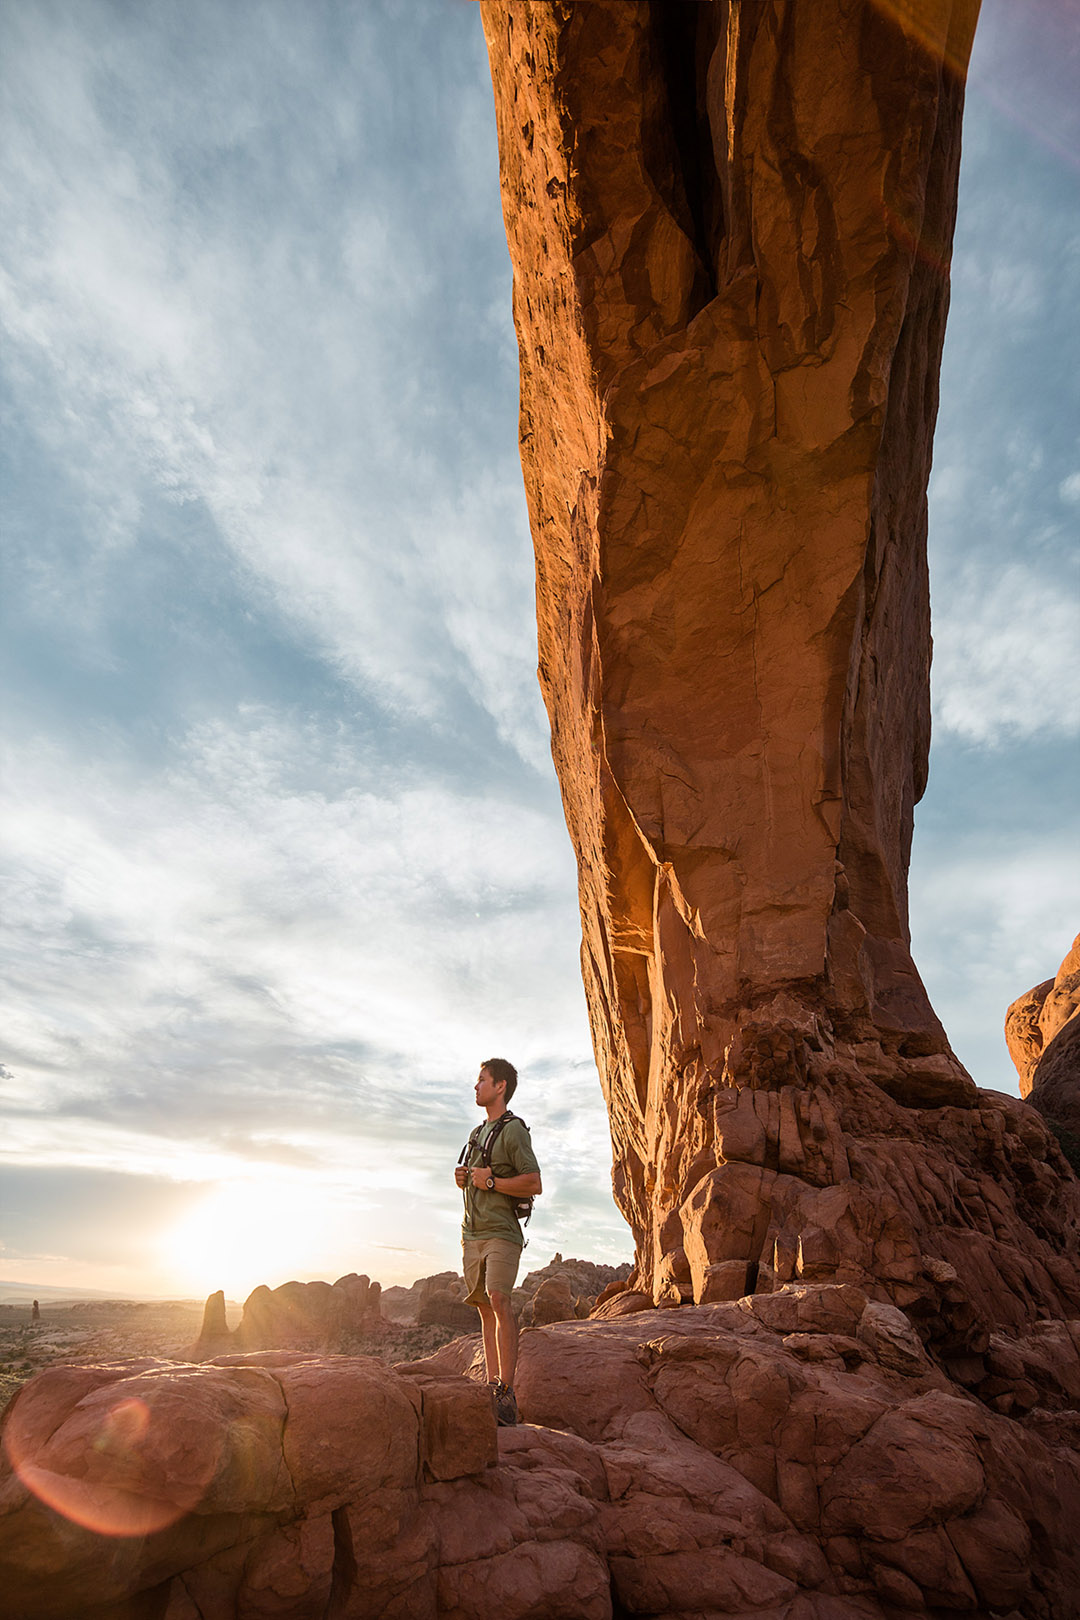 Exploring Sandstone Cliffs Around Moab Utah For Smartwool Lifestyle Campaign.